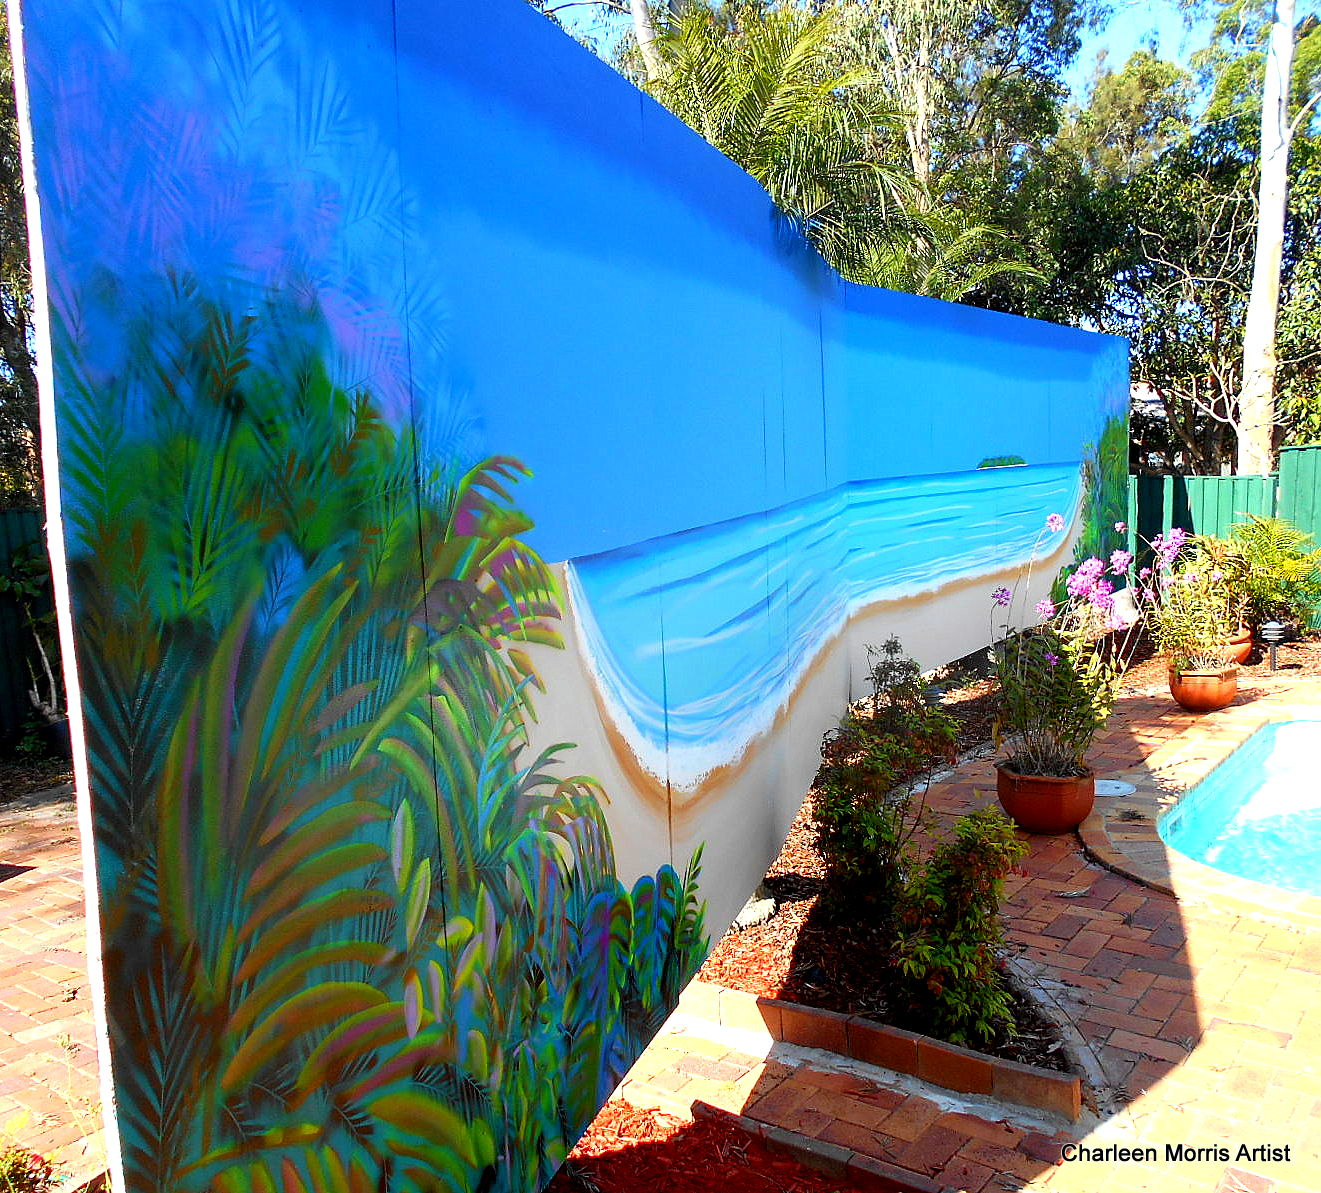 Tropical beach mural robina gold coast charleen morris art for Beach mural painting